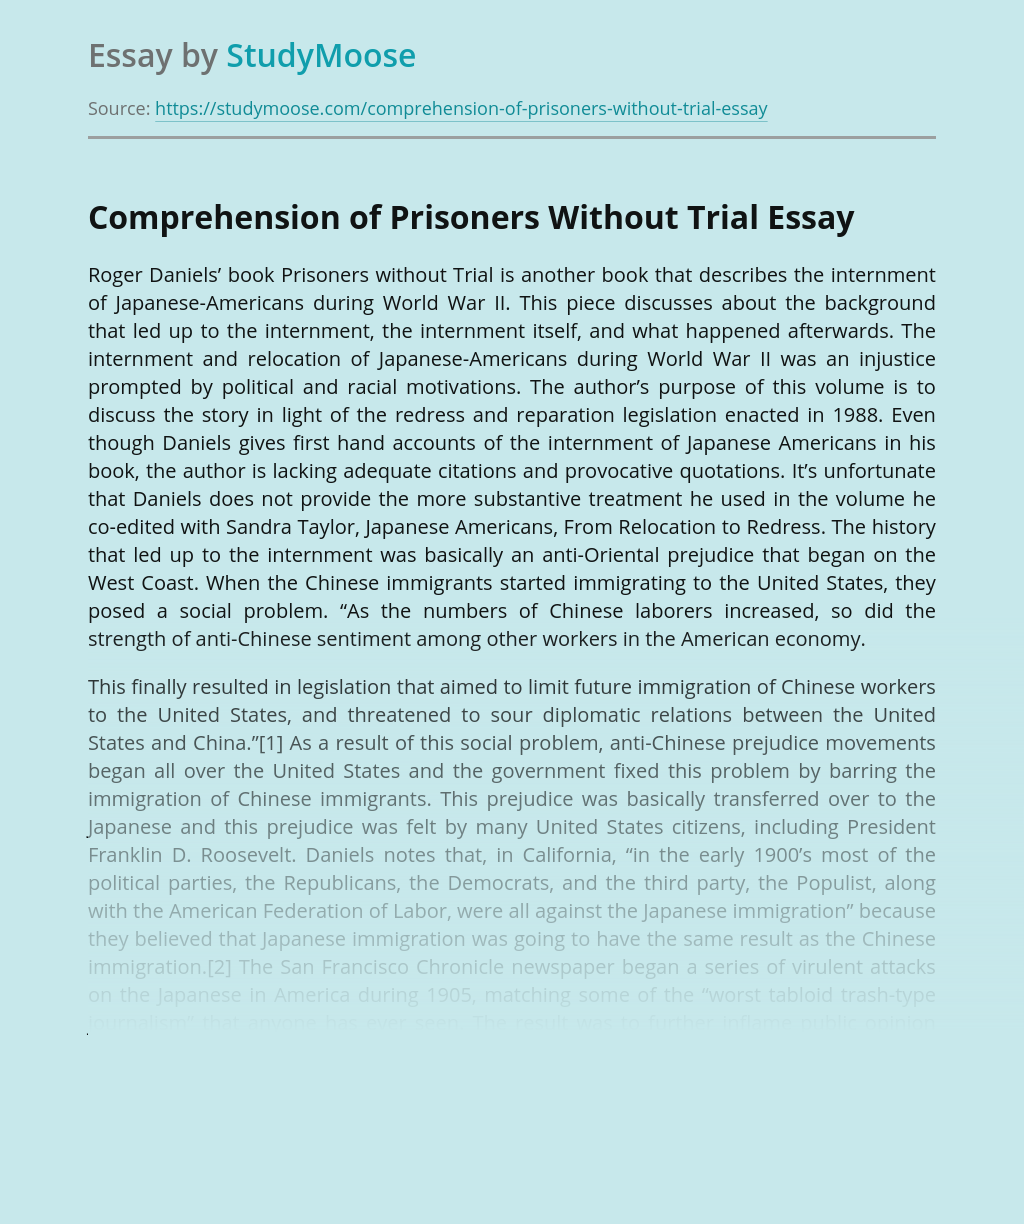 Comprehension of Prisoners Without Trial